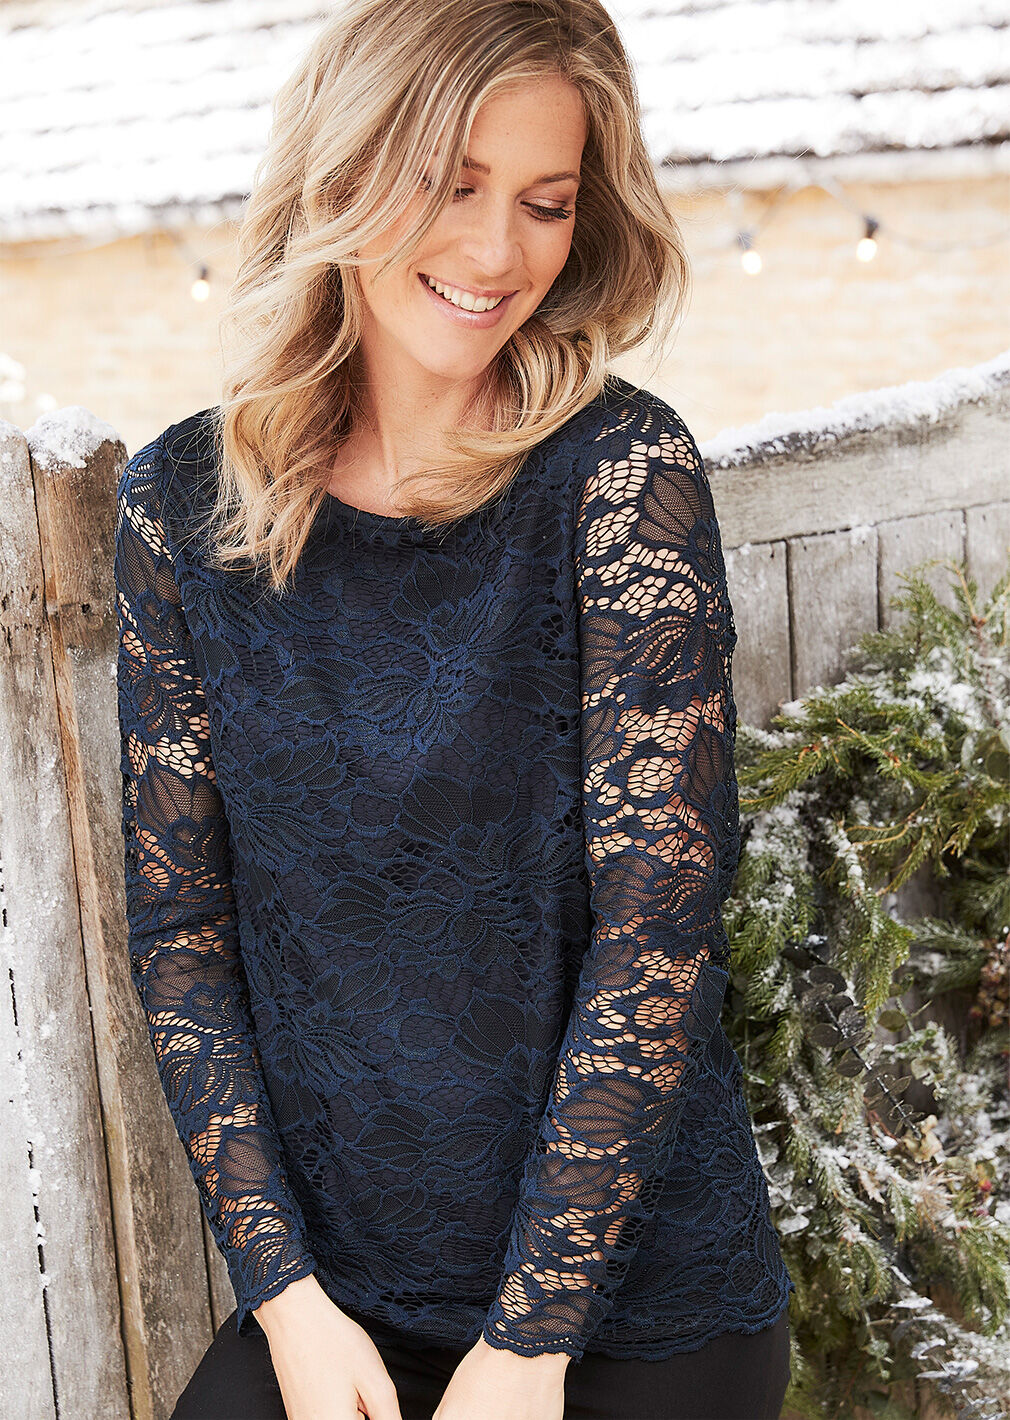 Partywear | Navy Stretch Lace Top | By Cotton Traders